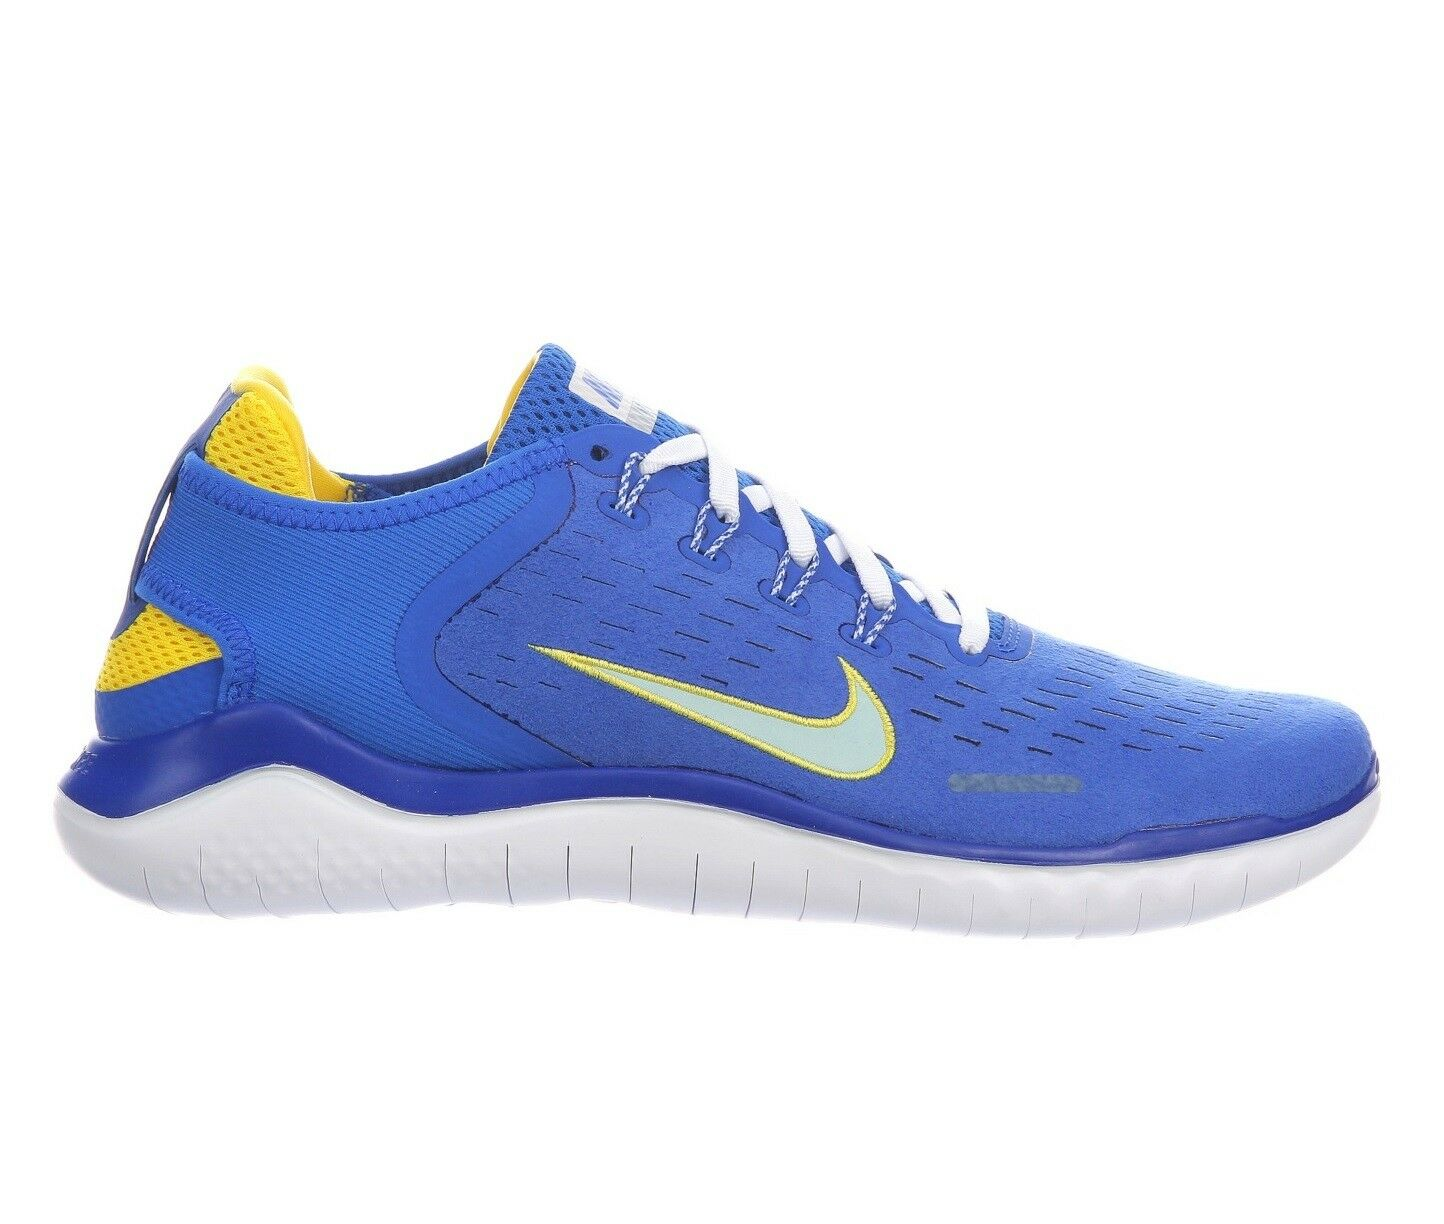 46bd5ae68b7f Nike Free RN 2018 AH7870-400 bluee Cobalt Citron Running shoes Size 9.5 DNA  Mens pghytb172-Athletic Shoes